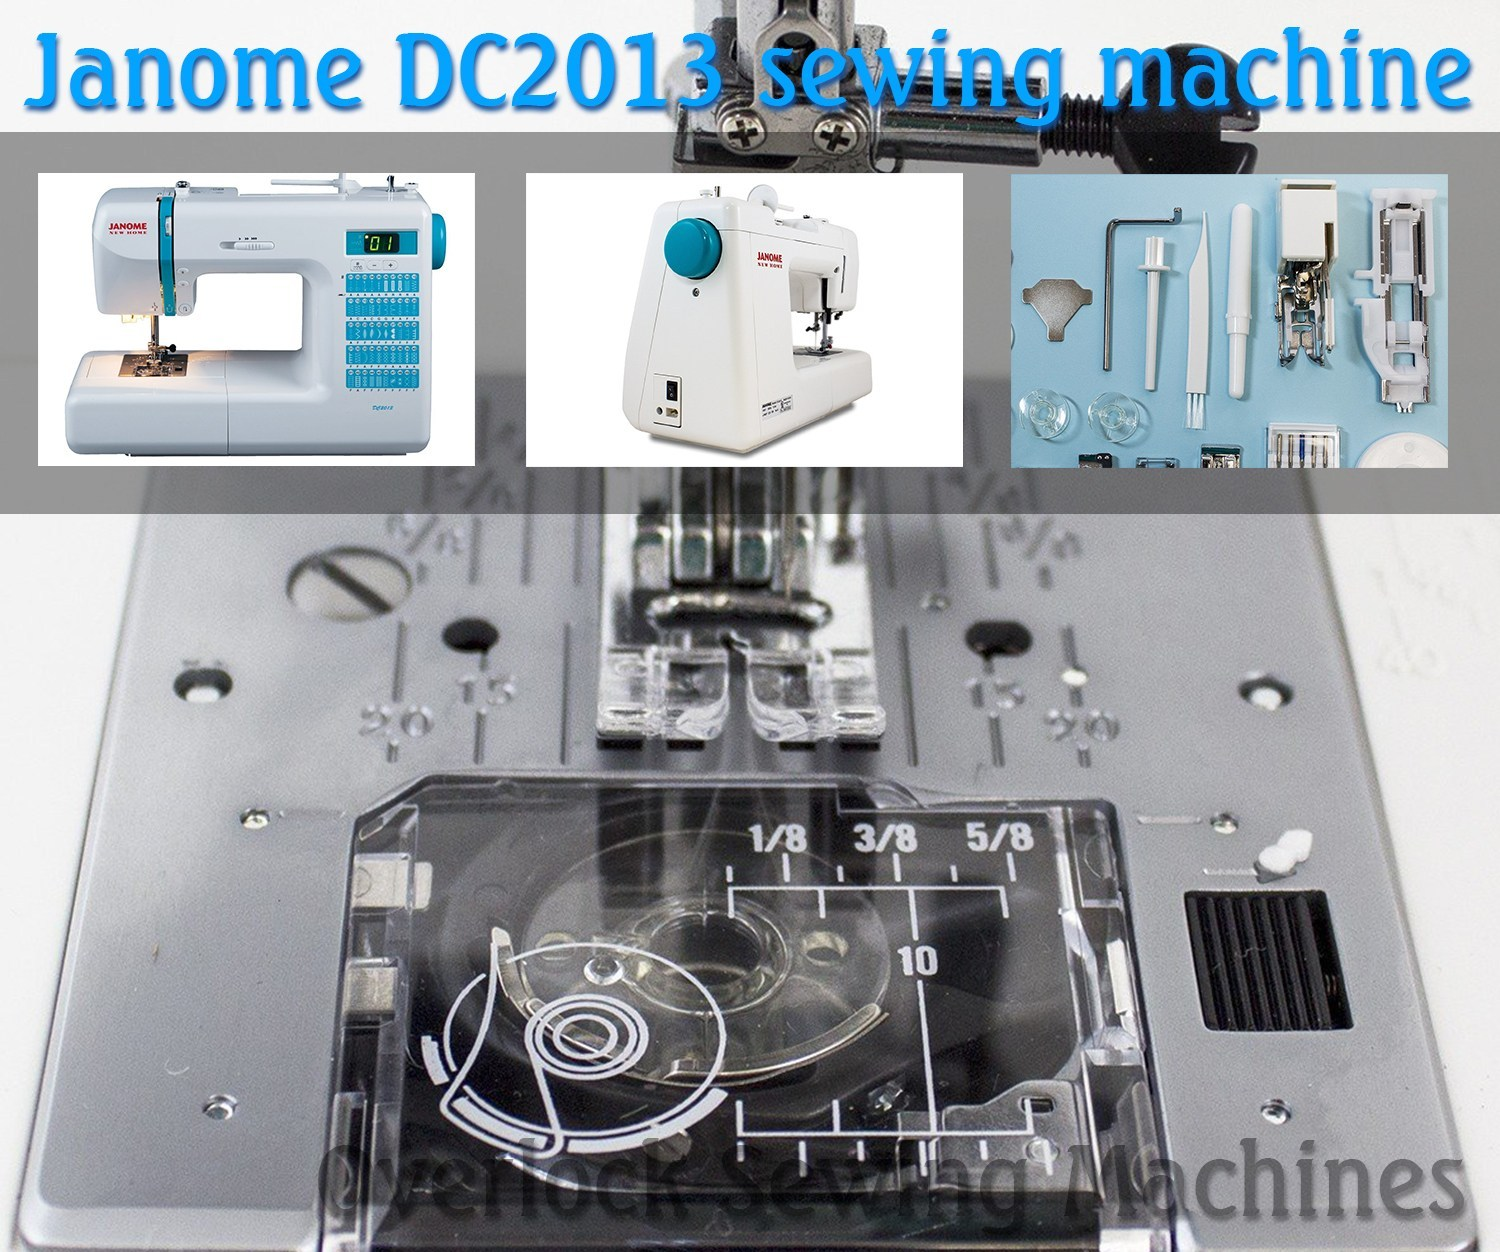 Review on Janome computerized sewing machine DC2013 (Image: amazon)